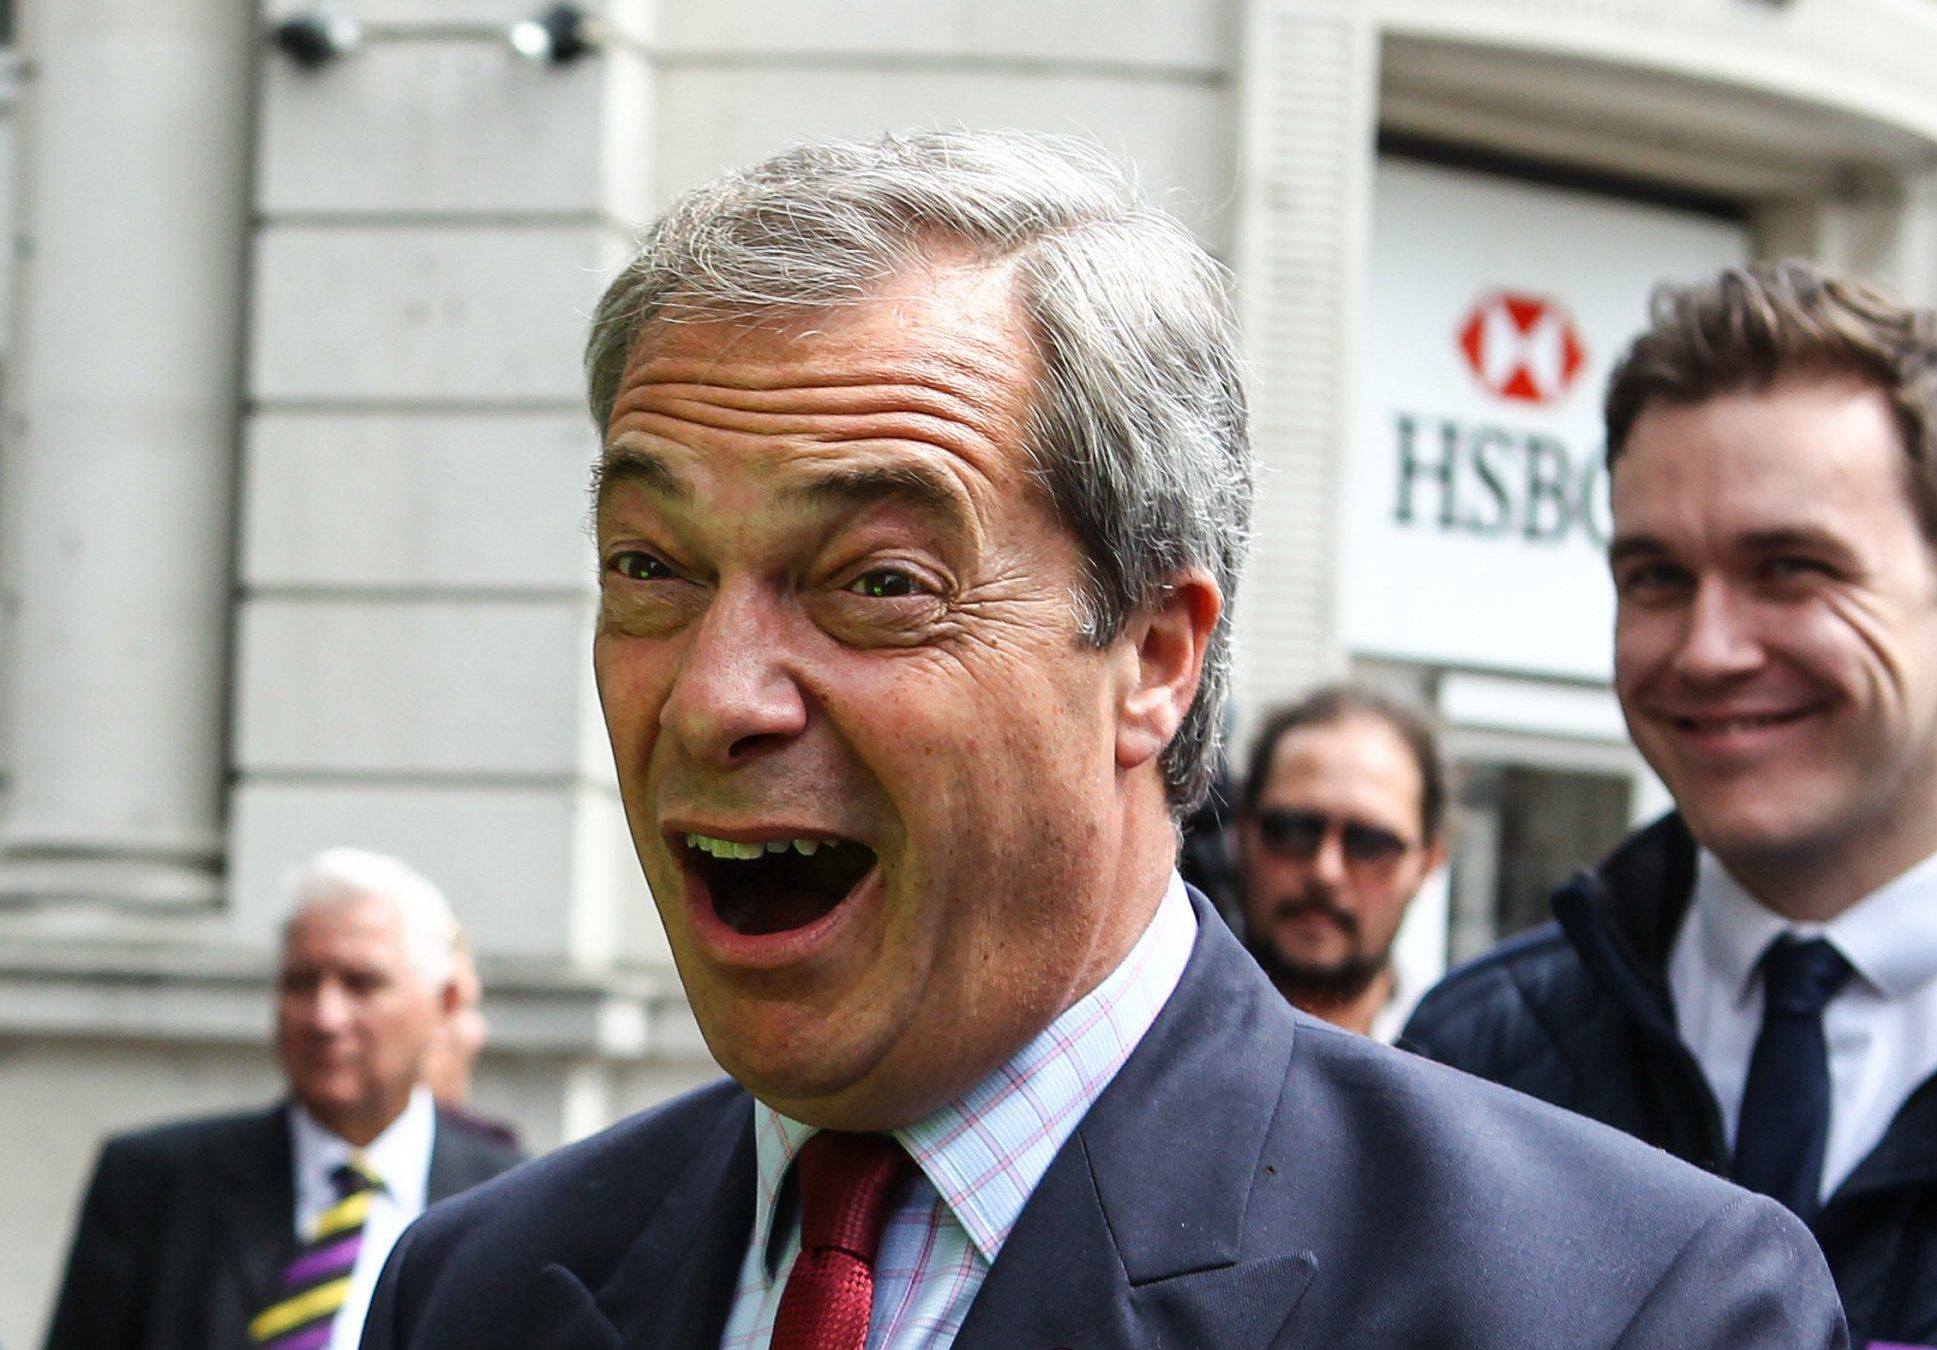 Nigel Farage visits Ramsgate to campaign for Vote Leave on his Brexit tour Featuring: Nigel Farage Where: Ramsgate, United Kingdom When: 13 Jun 2016 Credit: WENN.com